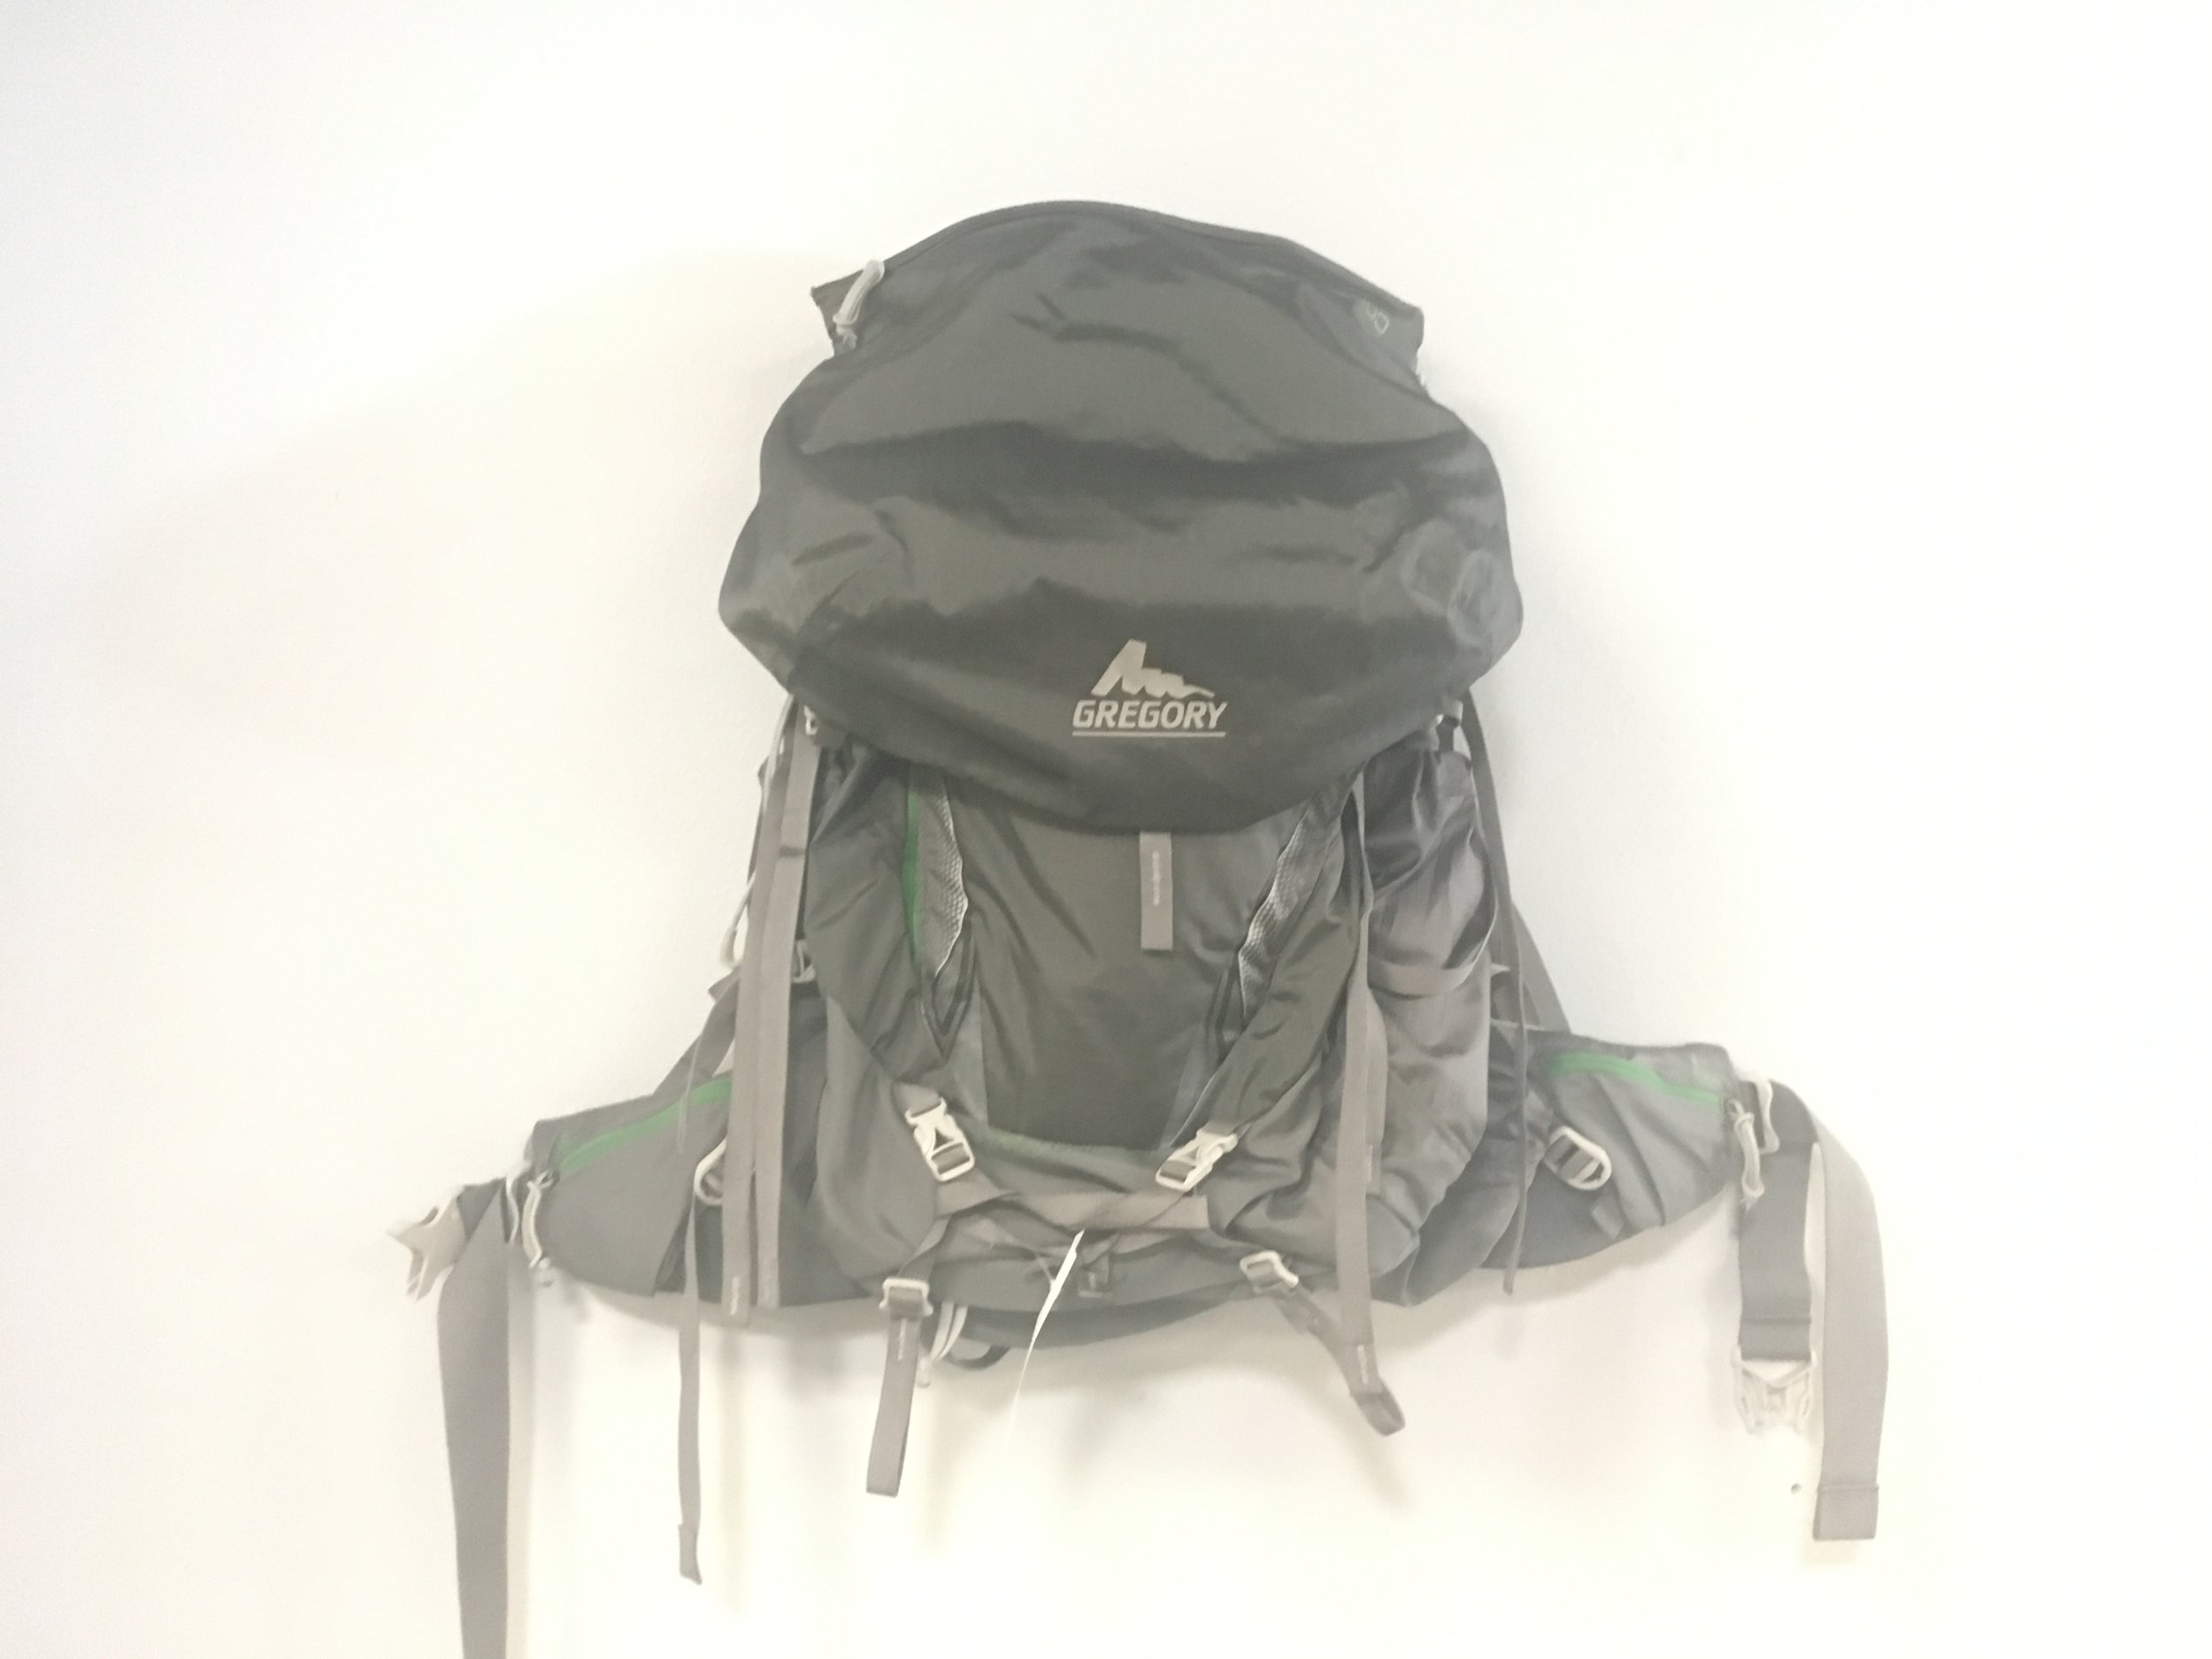 The Gregory Contour 60 is an excellent combination of load-hauling capability and access features. While lightweight (4 lbs) enough for quick overnights, it has the capacity (3600+ cubic inches) for fast-and-light multi-day excursions.Retail for the bag is listed at $280 but we got you covered for $134!